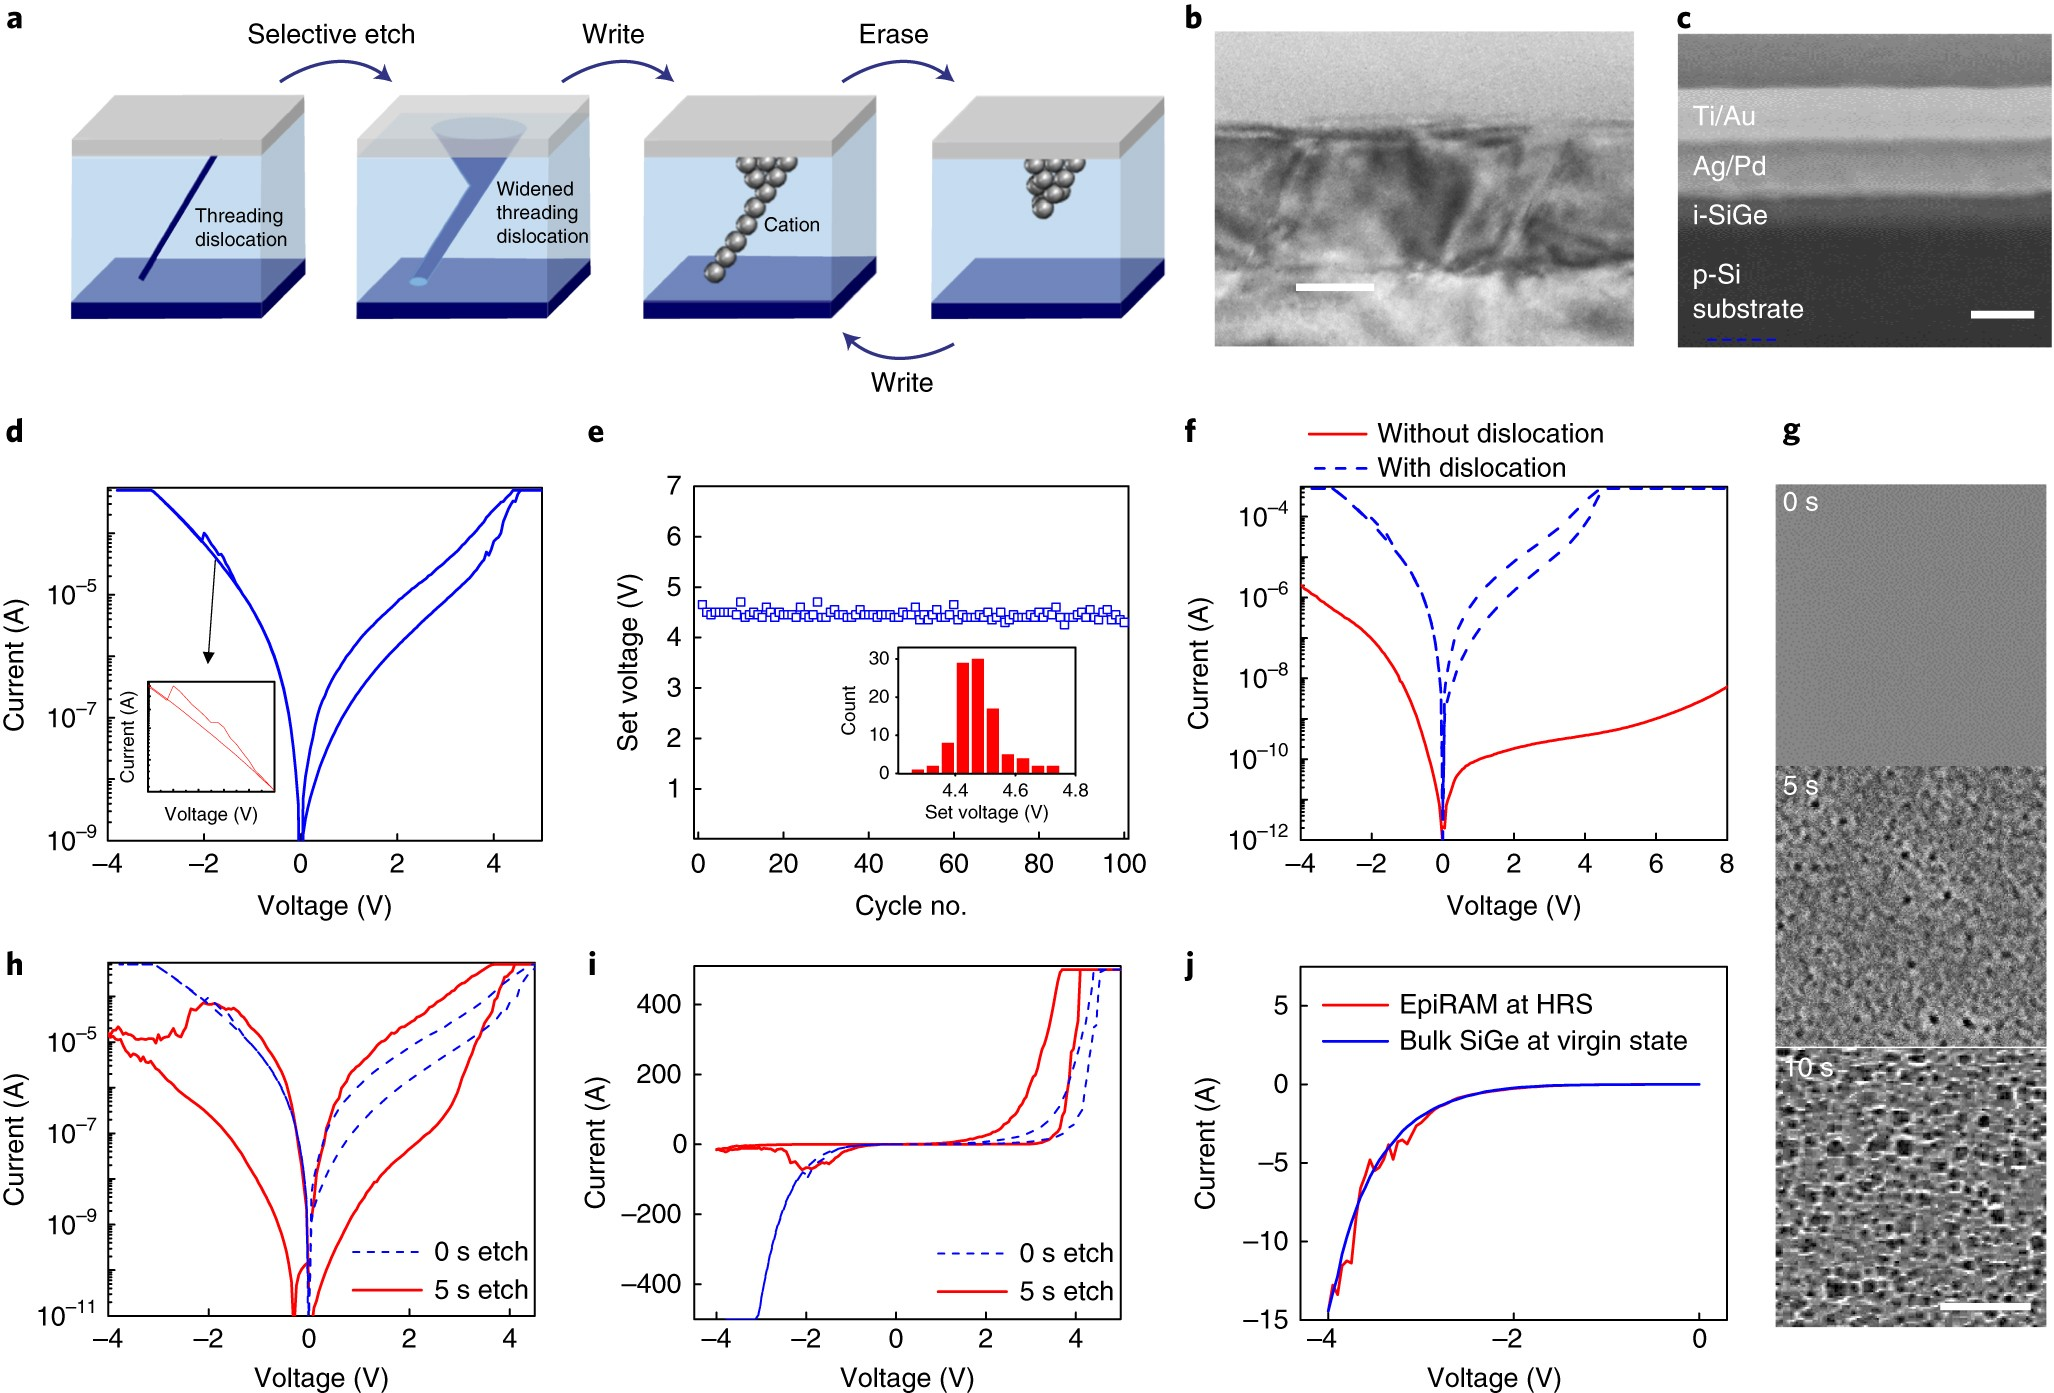 Sige Epitaxial Memory For Neuromorphic Computing With Reproducible When Voltage Is Changed Electrical Engineering Stack Exchange High Performance Based On Engineered Dislocations Nature Materials